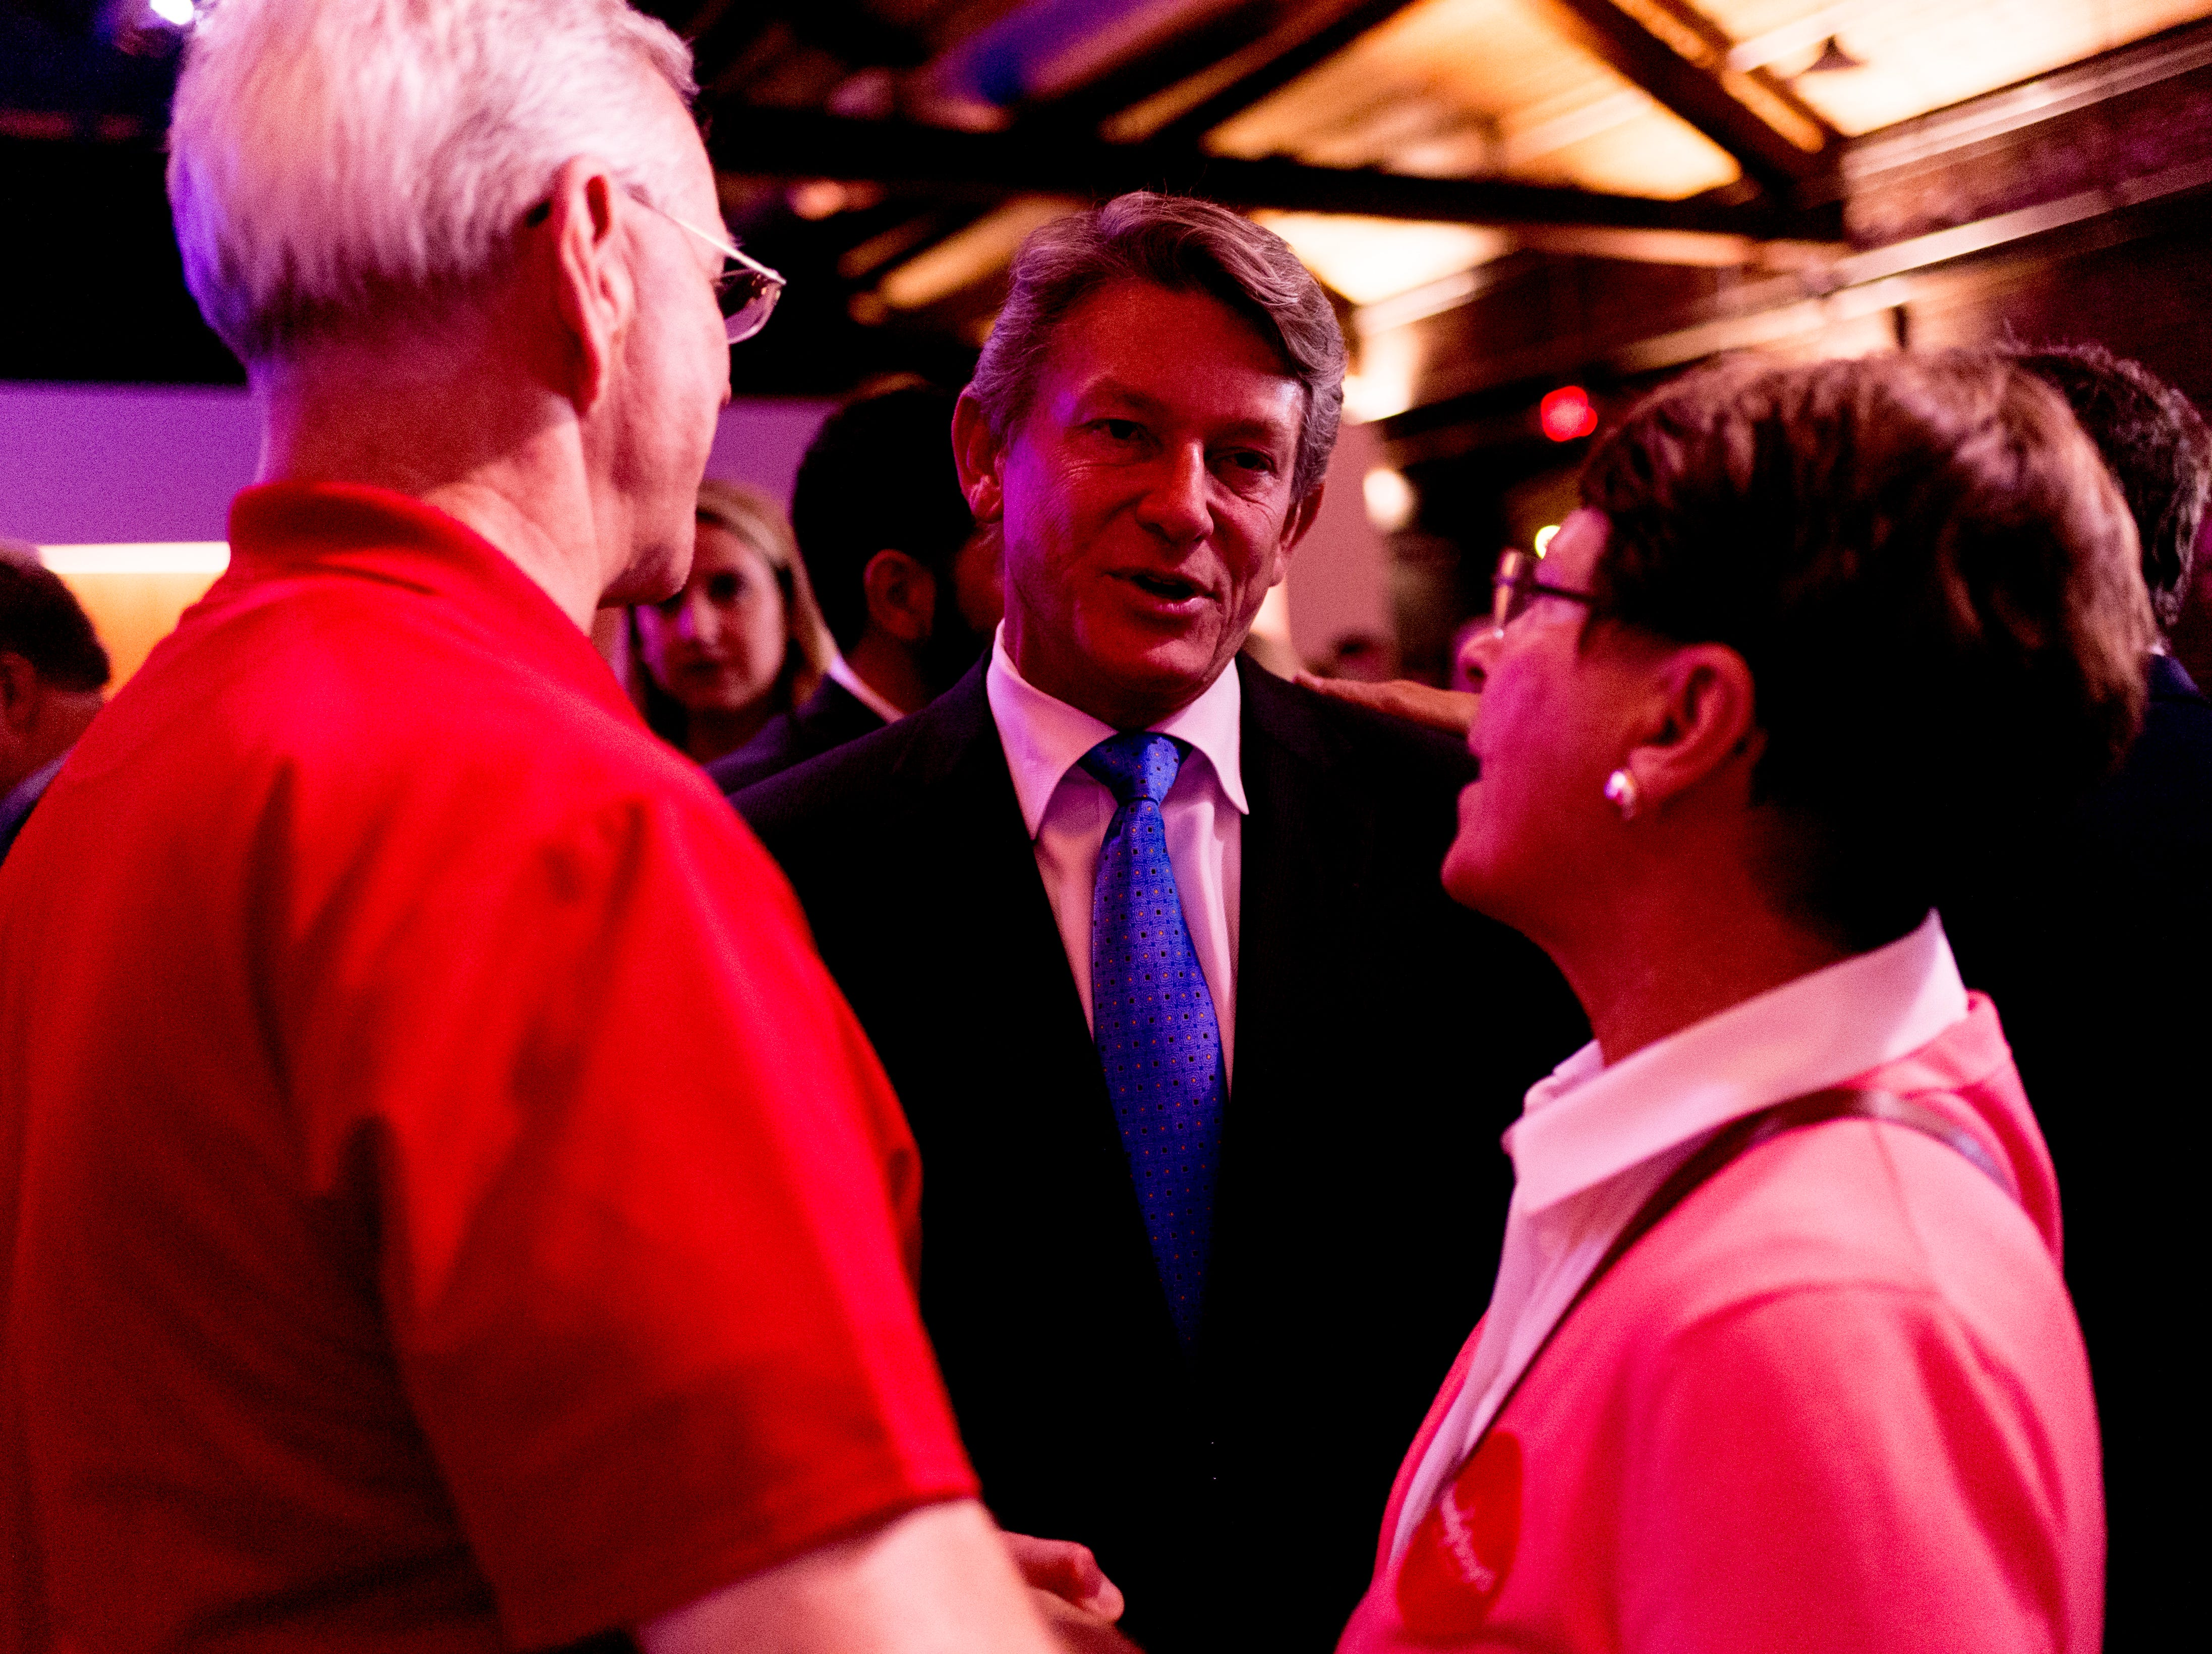 Randy Boyd meets with some of his supporters at his watch party at Jackson Terminal in Knoxville, Tennessee on Thursday, August 2, 2018.